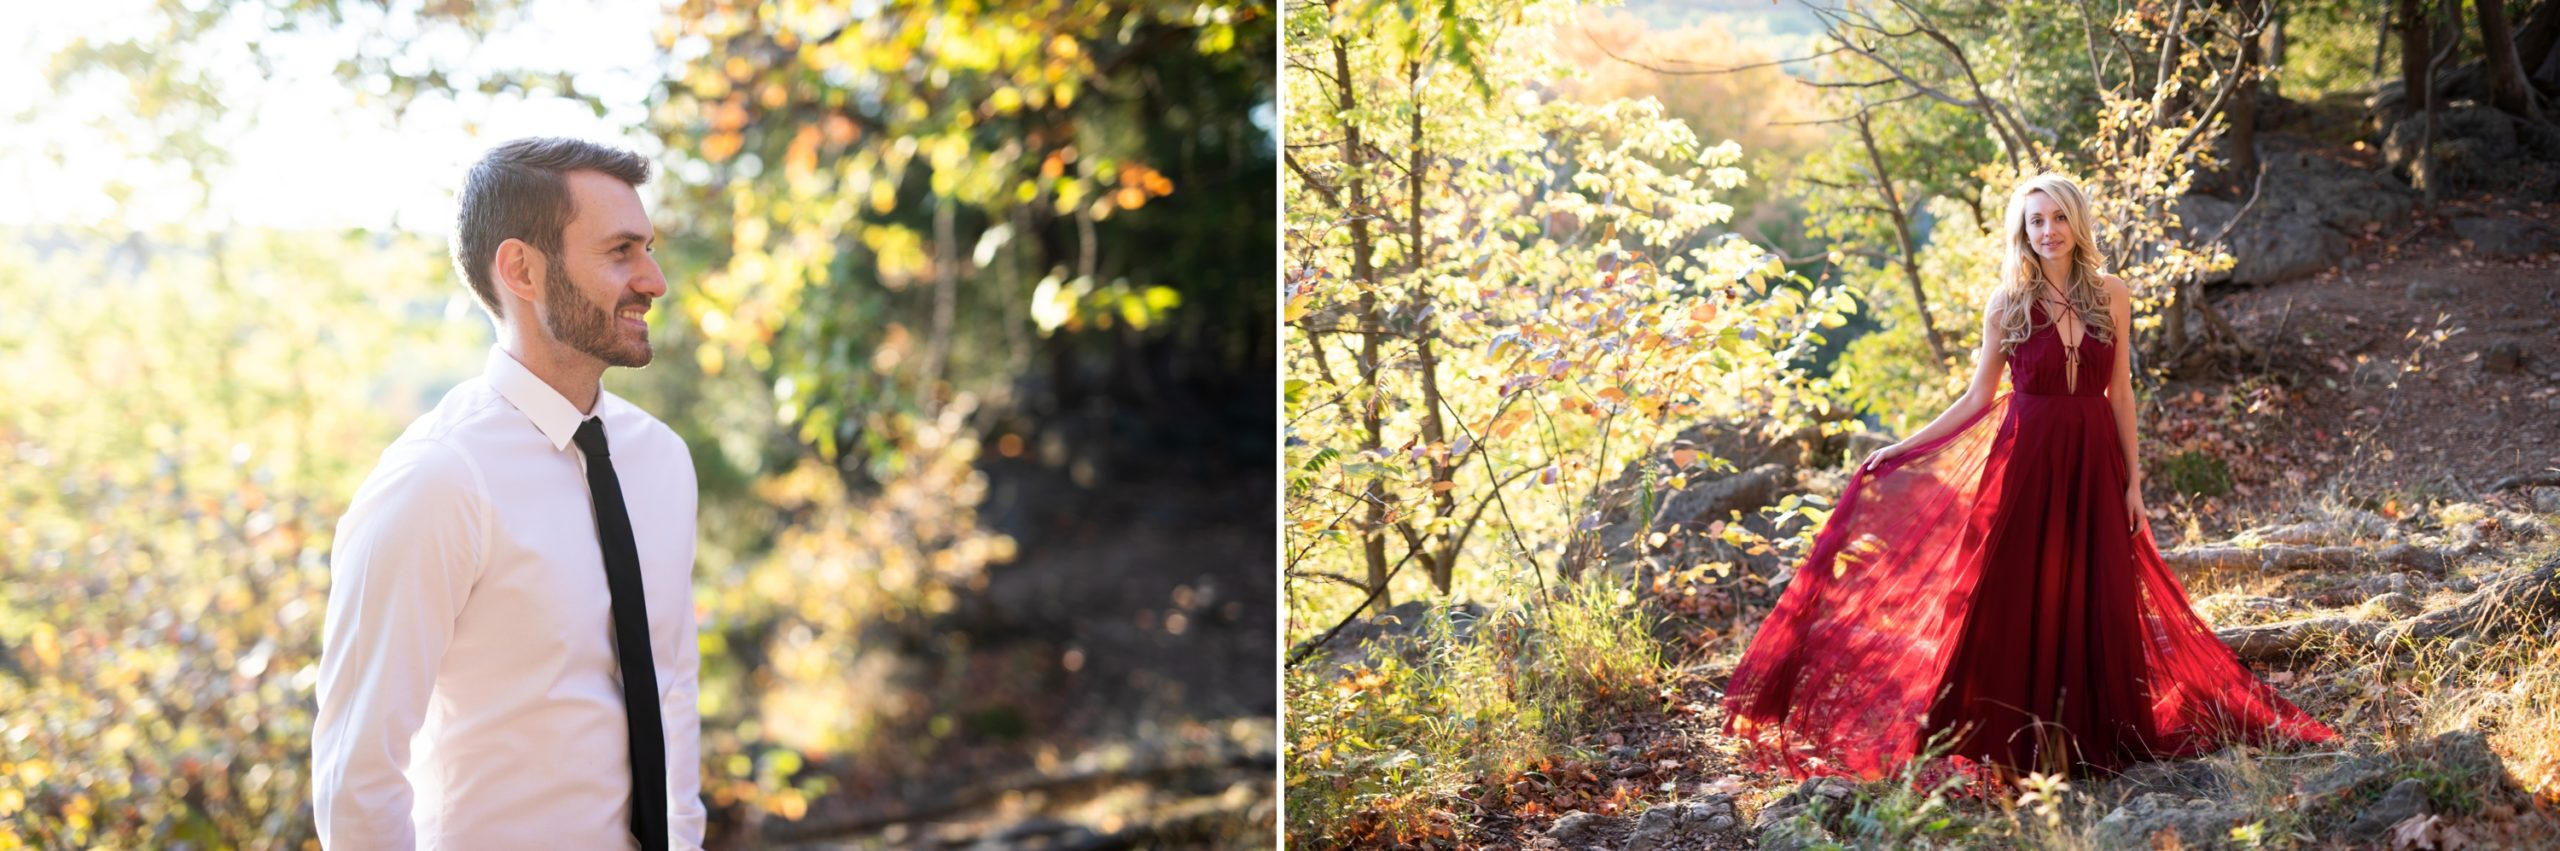 Bride Groom Rattlesnake Point Fall Autumn Engagement Milton Zsuzsi Pal Photography